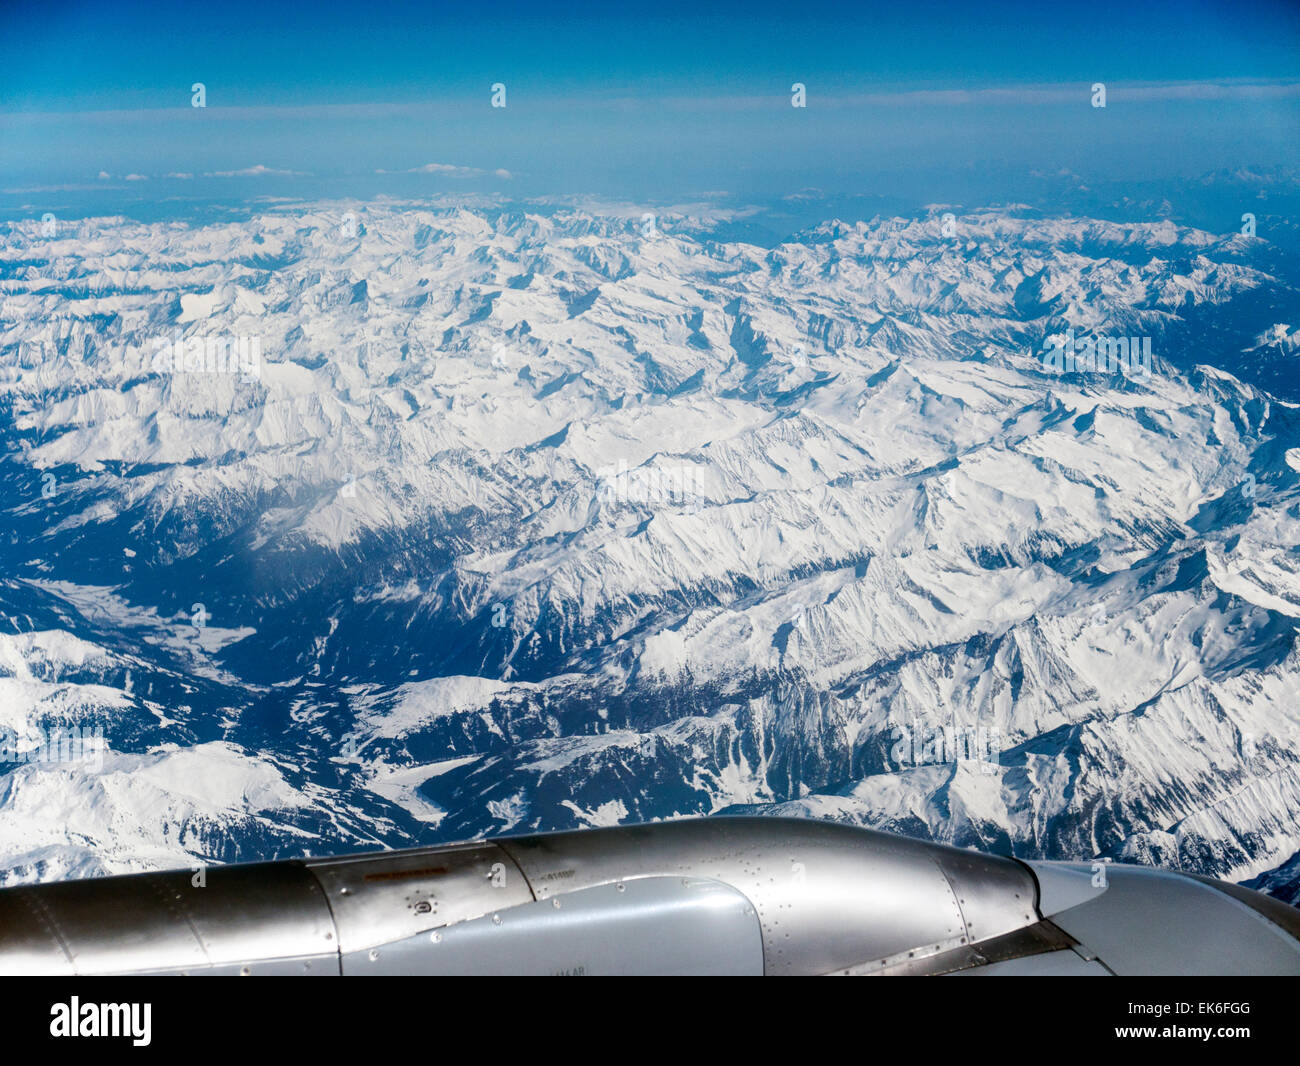 Daytime winter view of the Alps from commercial jetliner - Stock Image